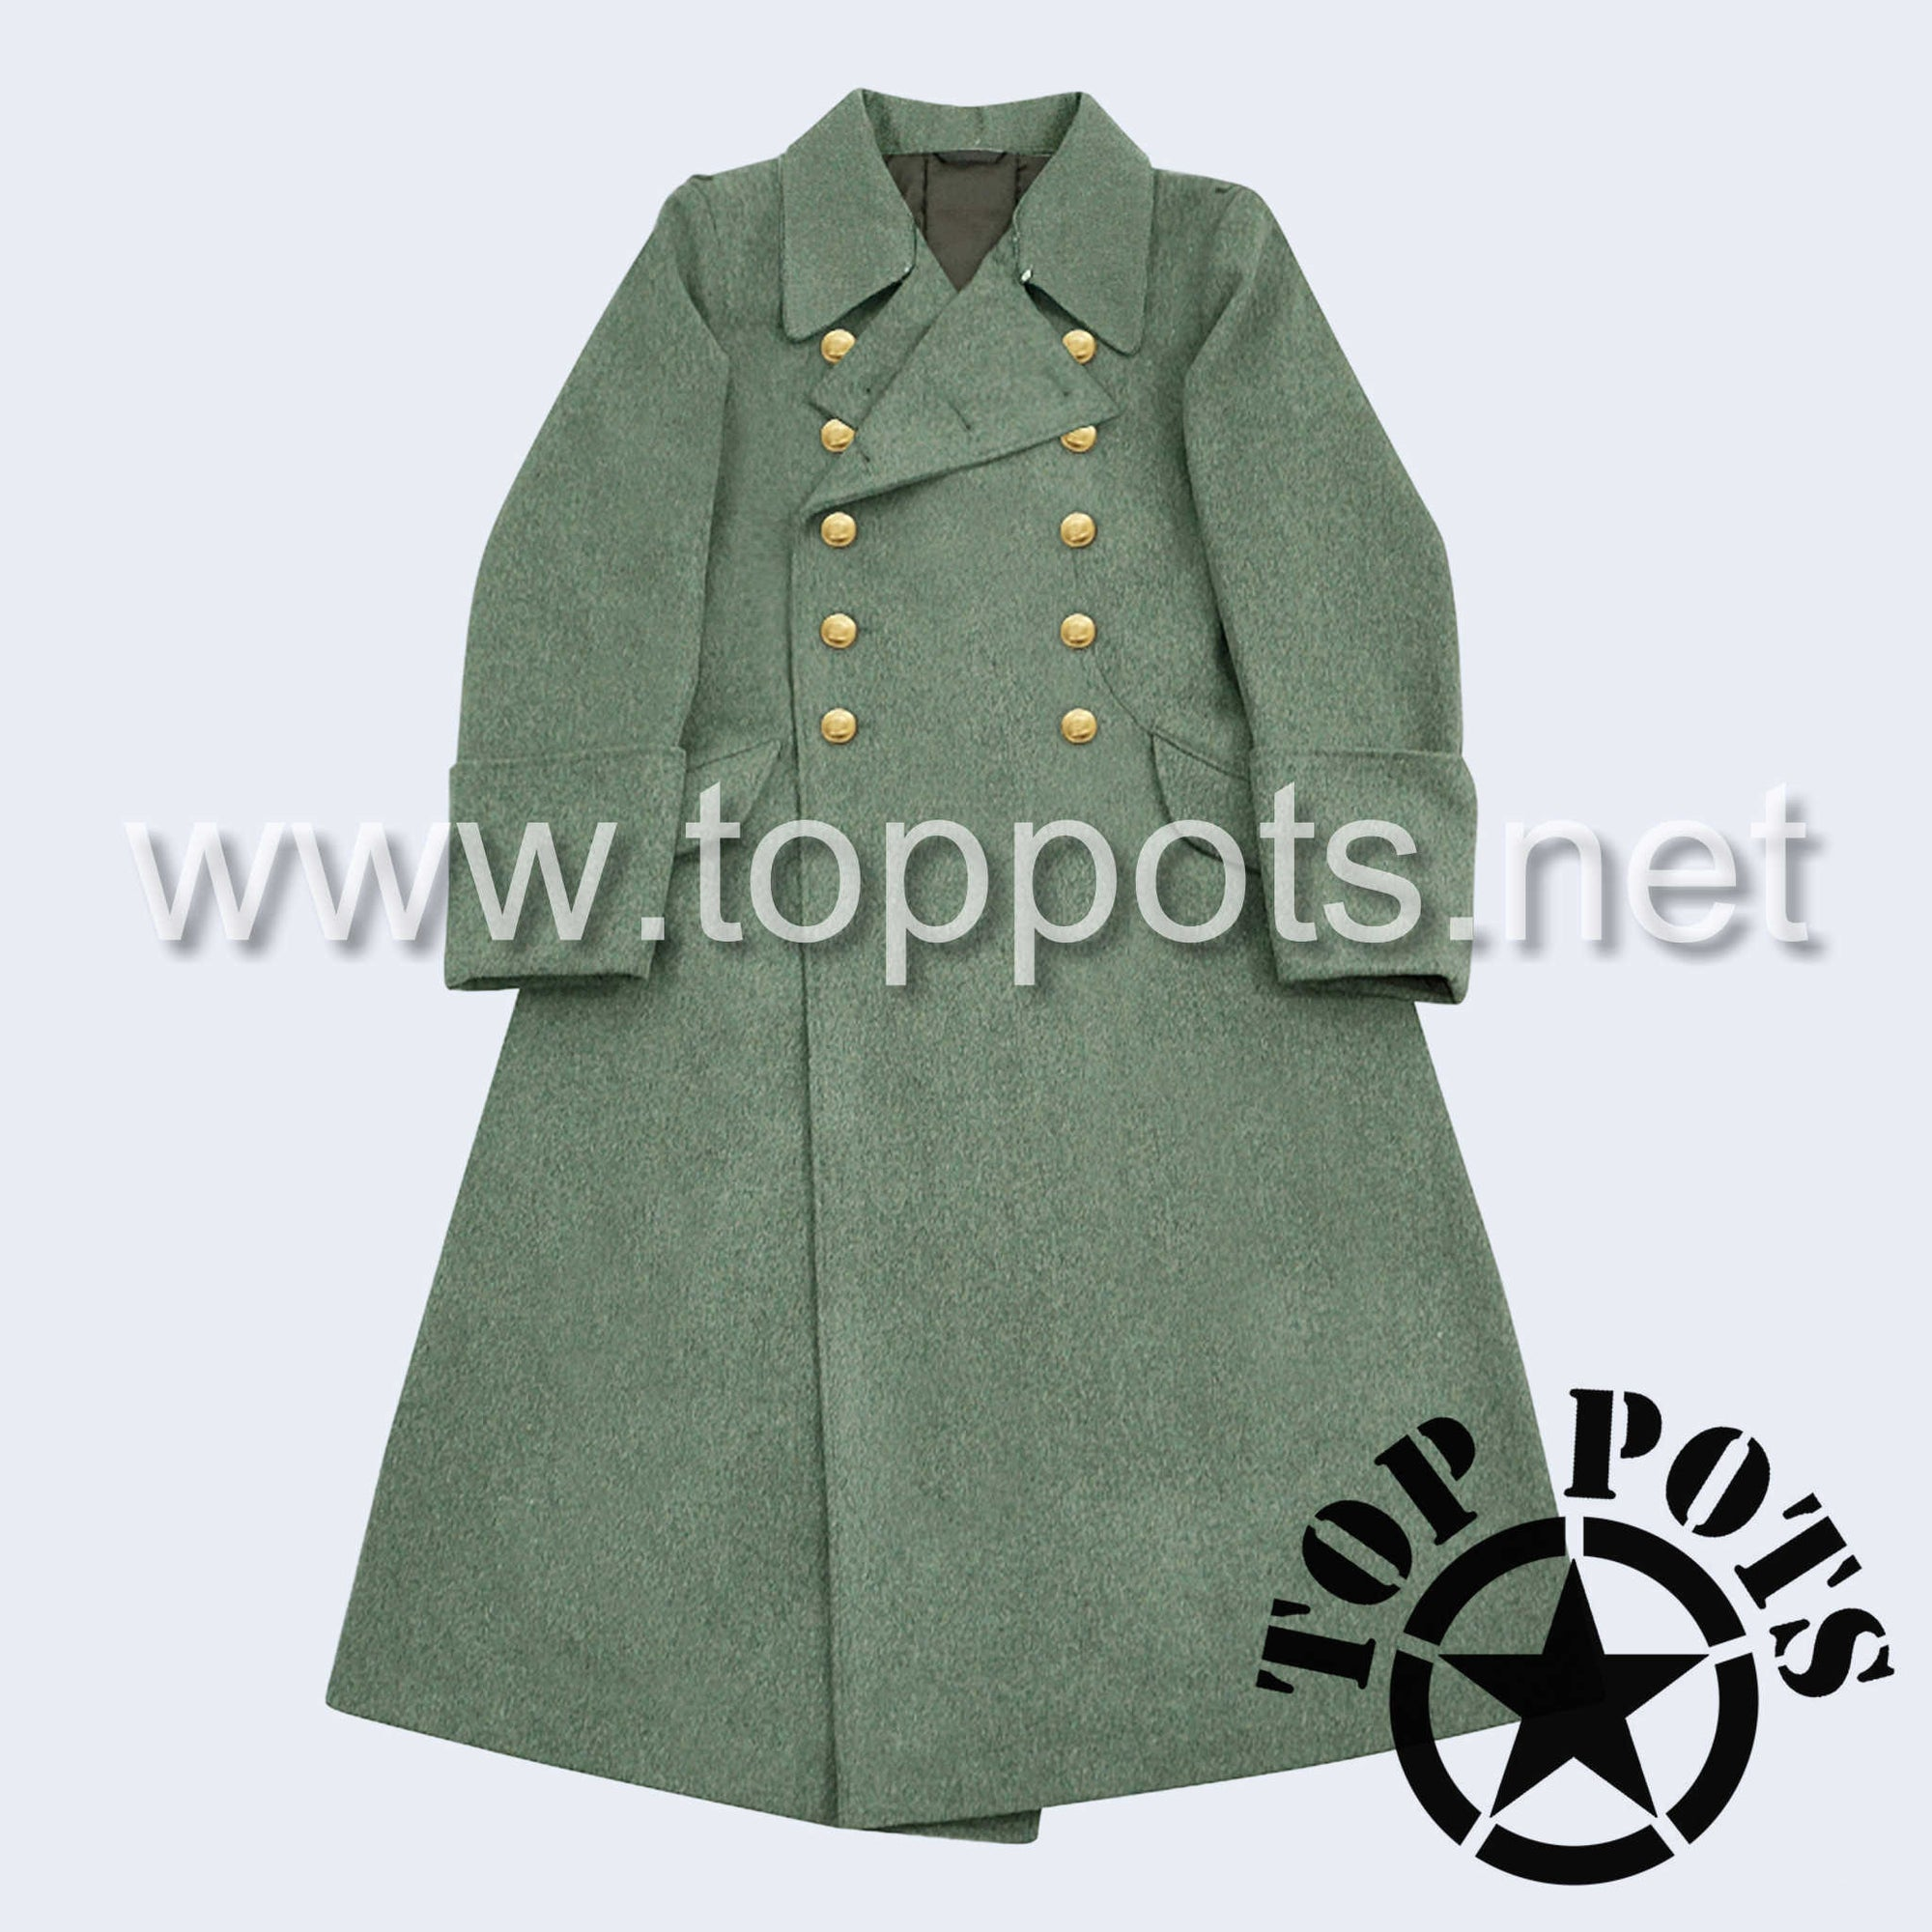 WWII German Navy M1940 Kreigsmarine Uniform Overcoat Greatcoat Winter Jacket Field Grey Wool - Coastal Officer